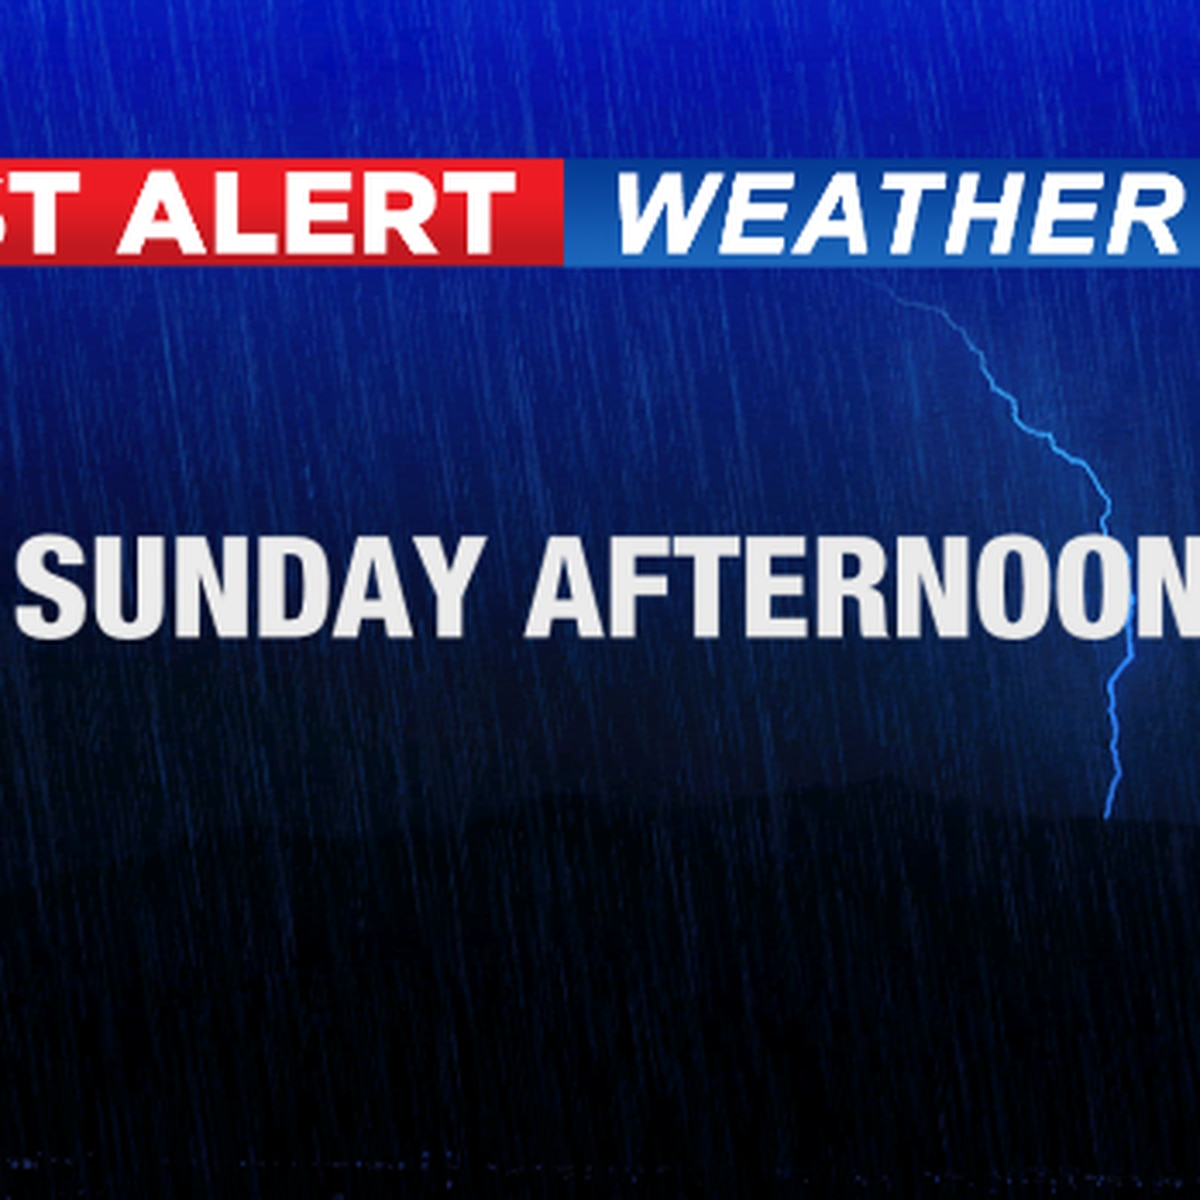 First Alert Weather Day Sunday afternoon